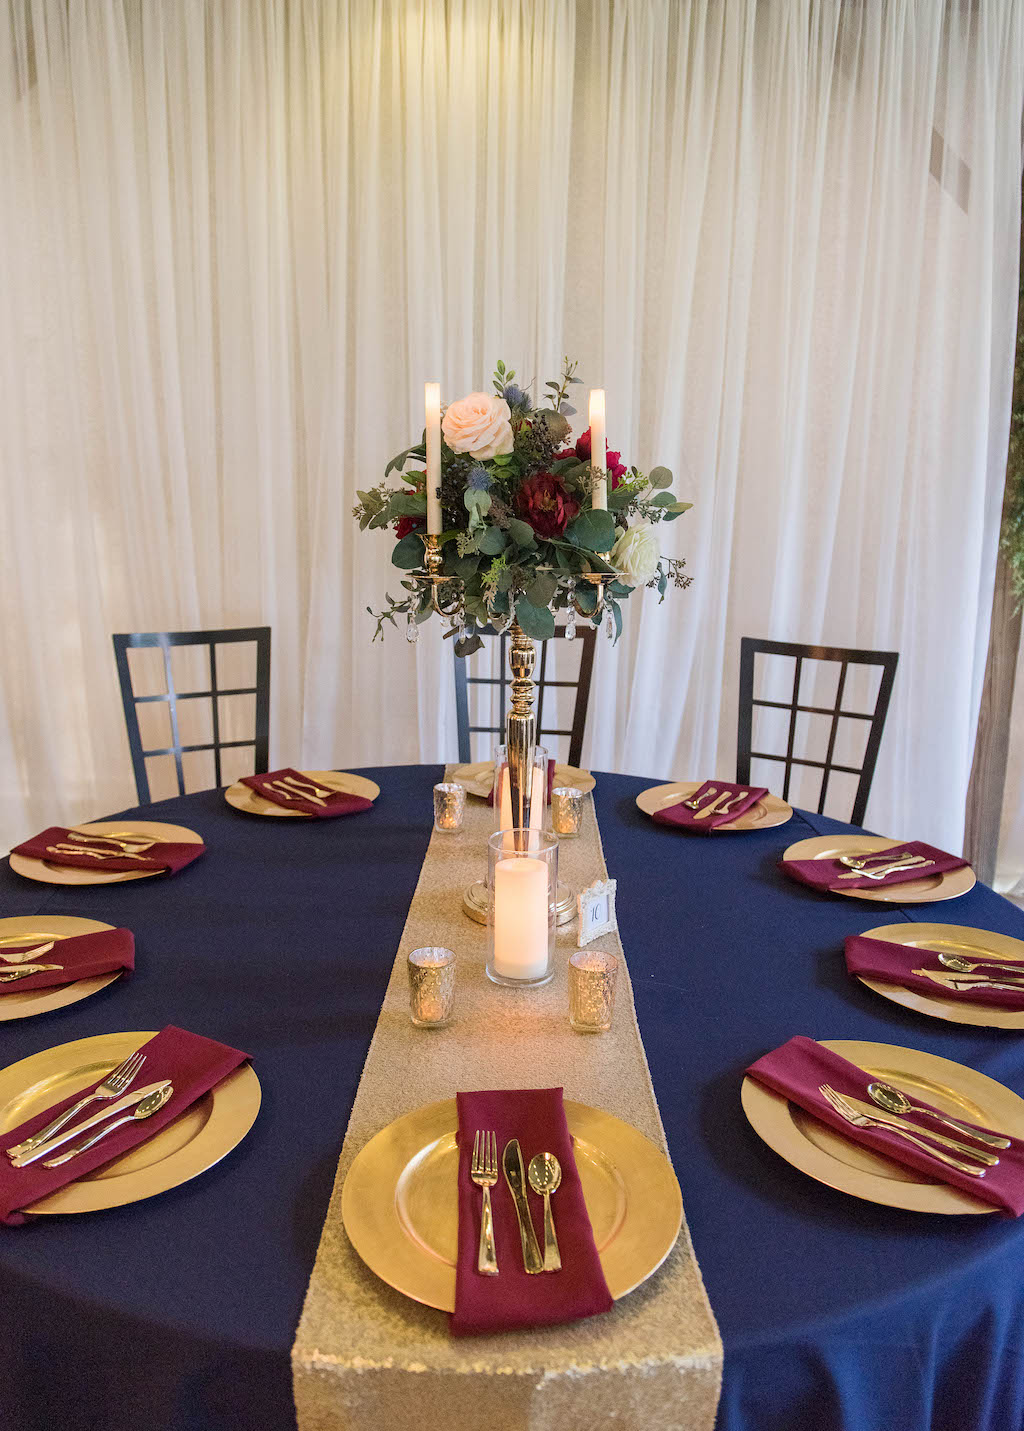 Rustic Wedding Reception Decor, Round Tables with Navy Blue Tablecloths, Gold Chargers and Burgundy Linens, Tall Silver Candlestick with Greenery, Ivory and Red Floral Bouquet Centerpiece, Gold Table Runner, Bistro Hanging Lights | Rustic Tampa Wedding Venue Kathleen's Garden